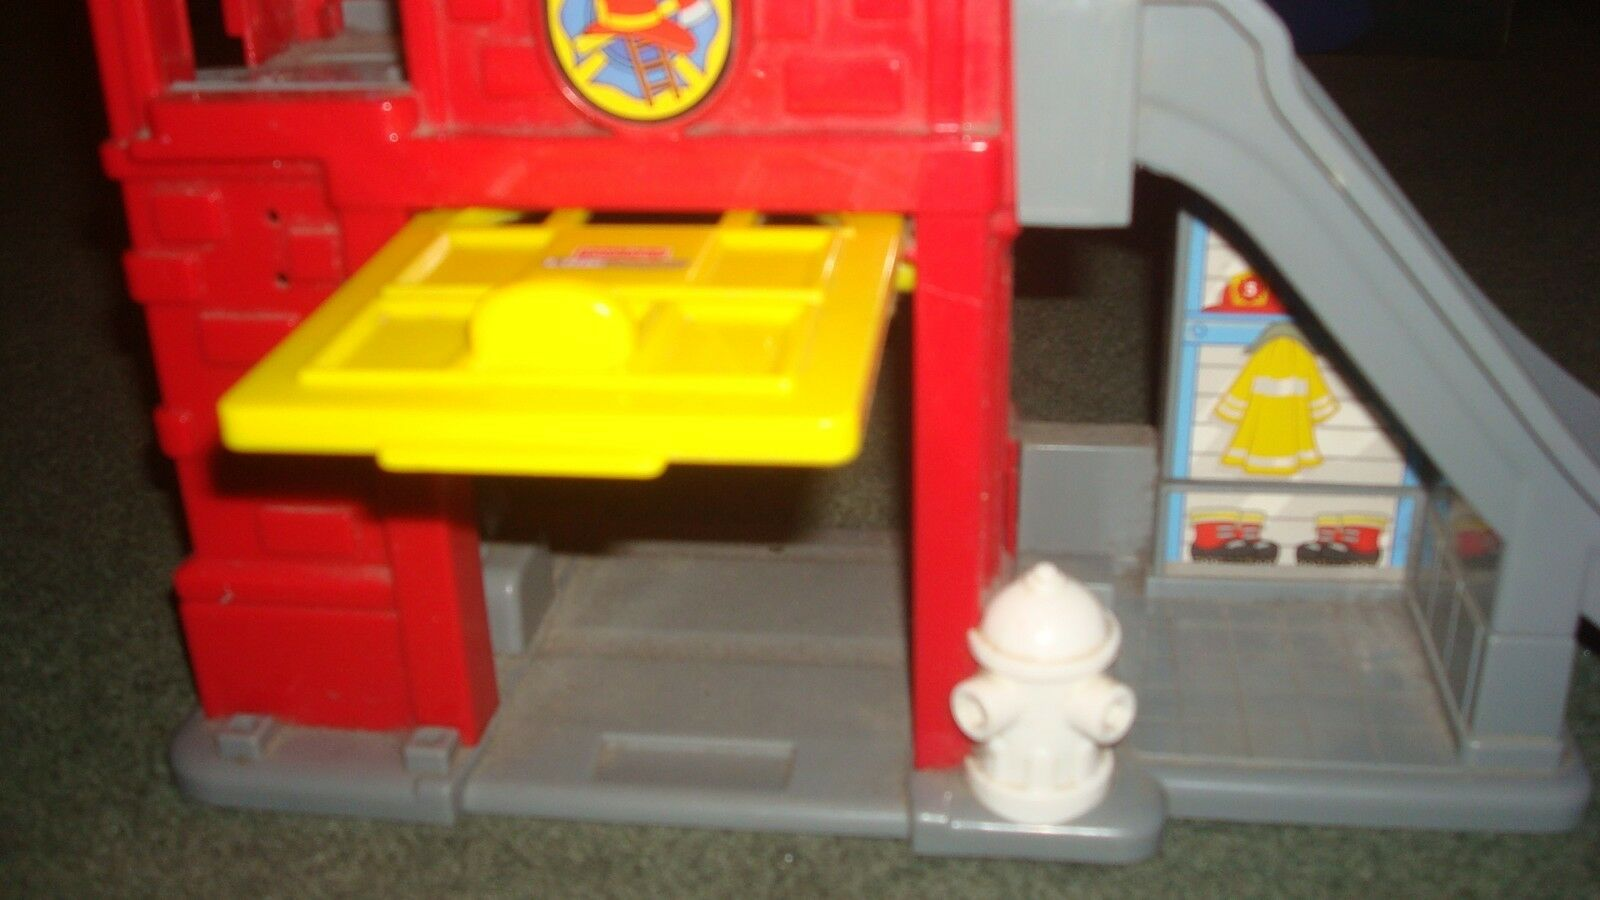 MATTEL 2008 Fisher and Price fire brigade building and Fisher fireman figurine. 955bfc